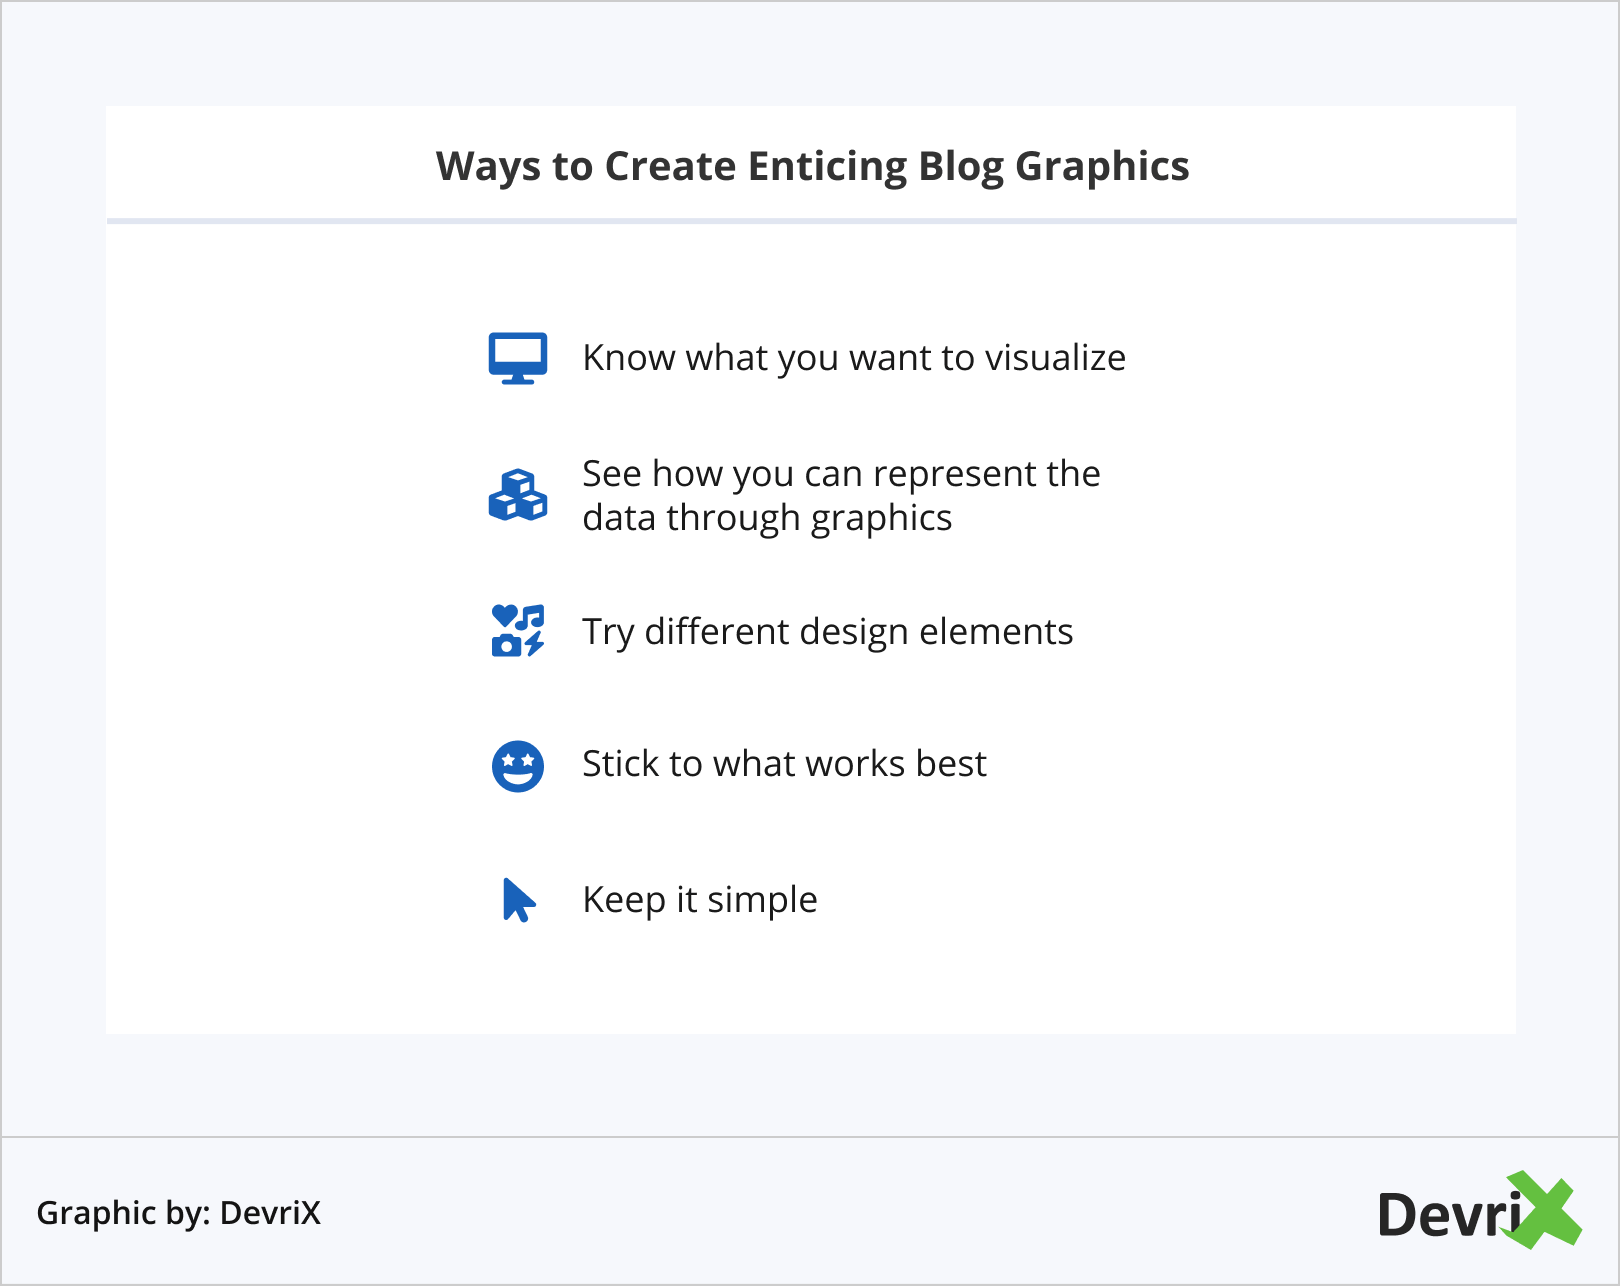 Ways to Create Enticing Blog Graphics